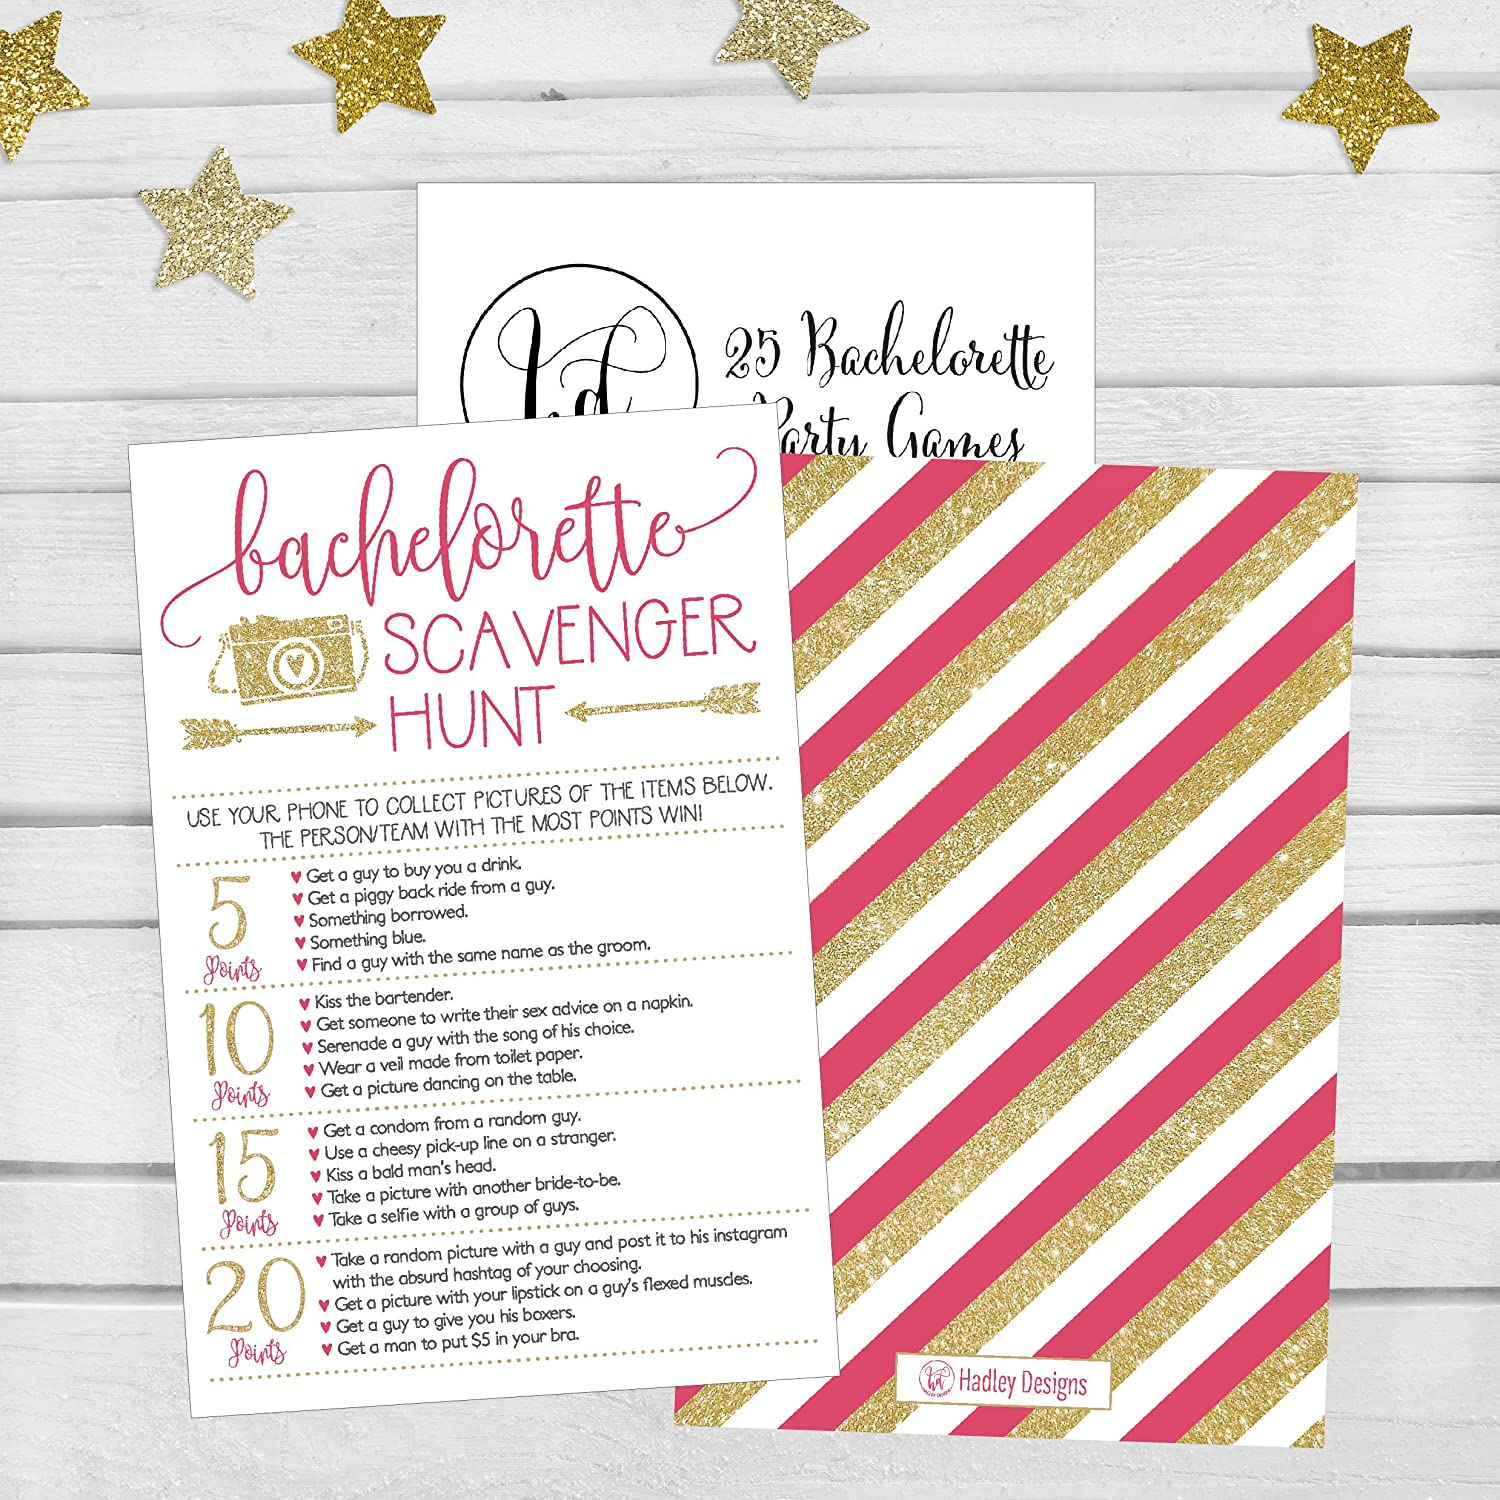 Amazon.com: 25 Bachelorette Scavenger Hunt Party Games, Girls Night ...